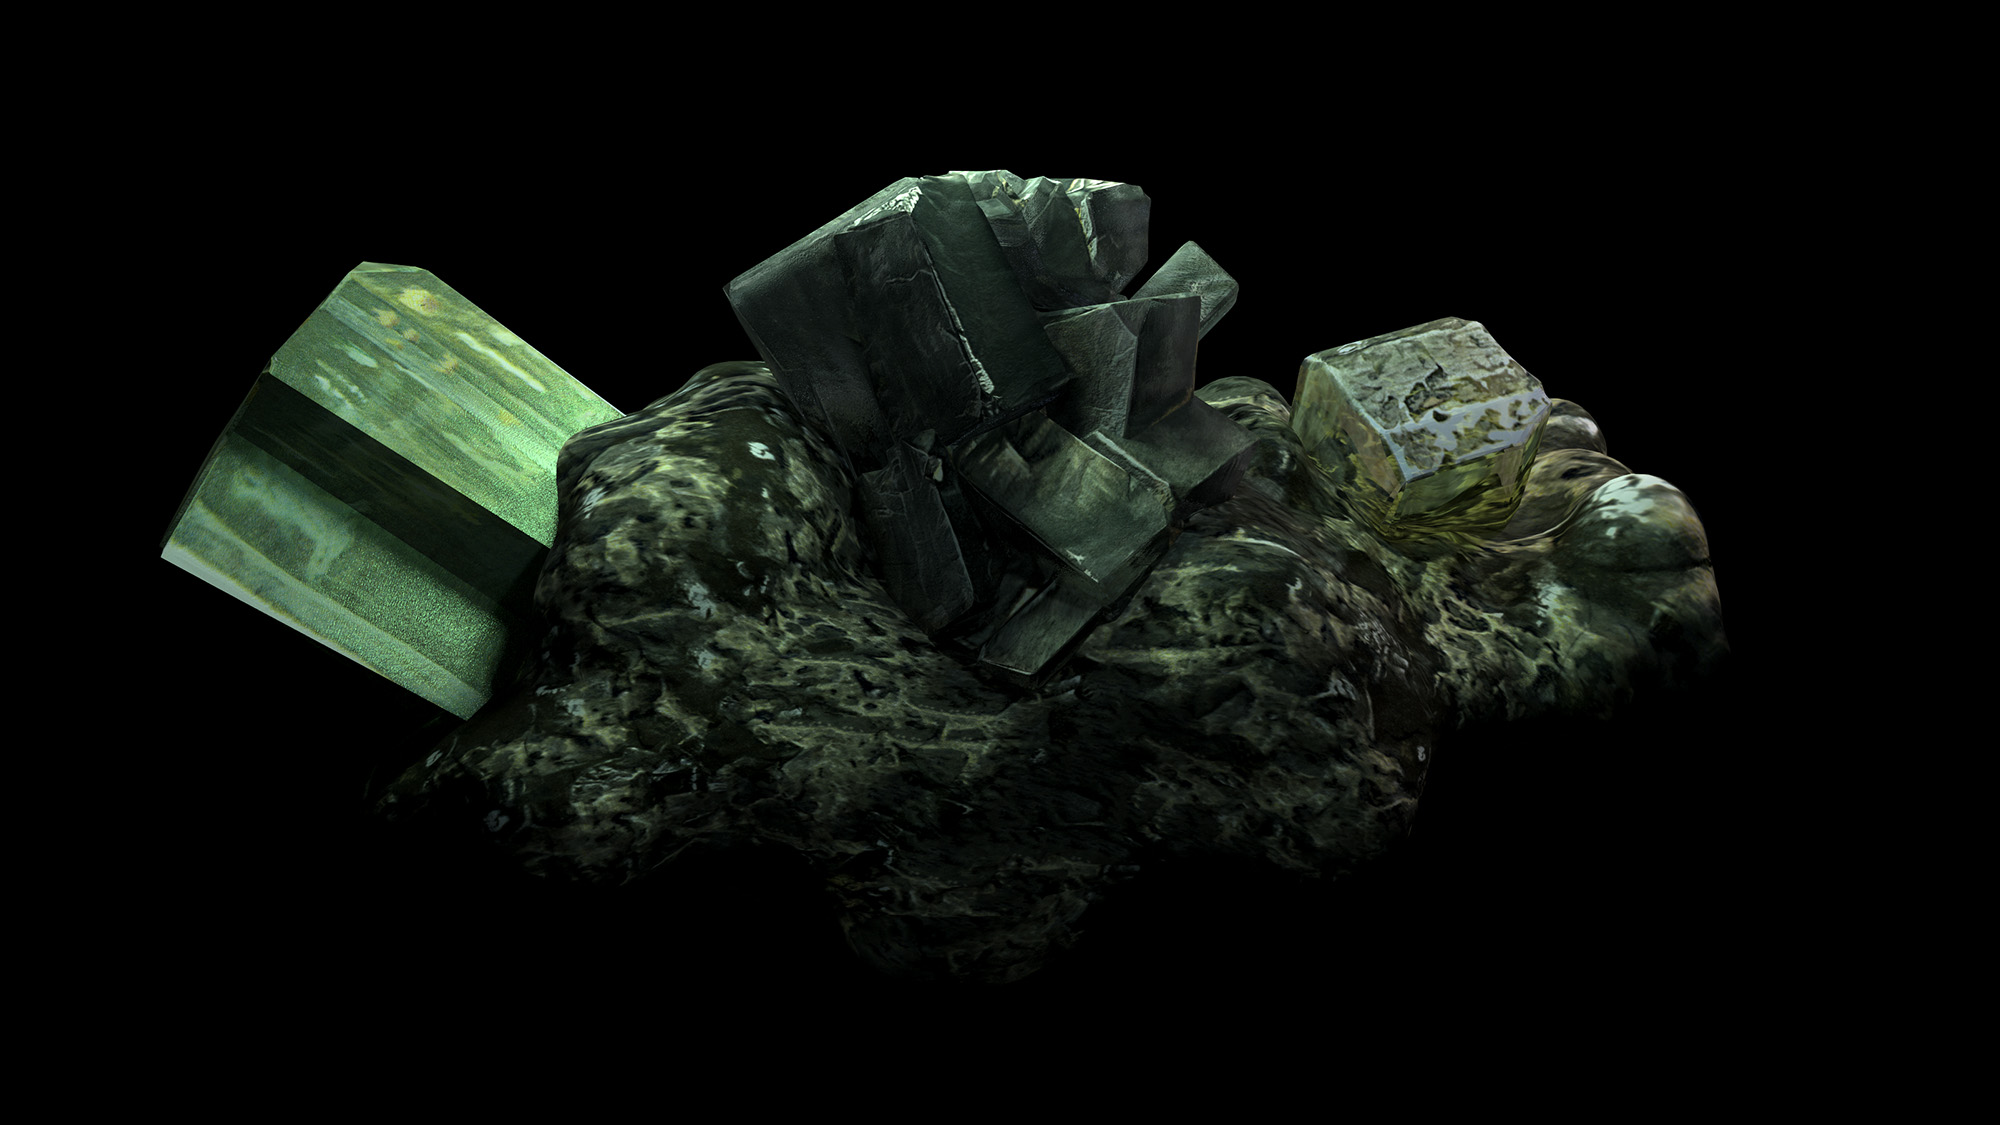 CGI visual of imaginary mineral using 3D modeling techniques, developed in collaboration with Valle Medina and Benjamin Reynolds (Pa.LaC.E), Video Still: Archeology of Sacrifice , 2020